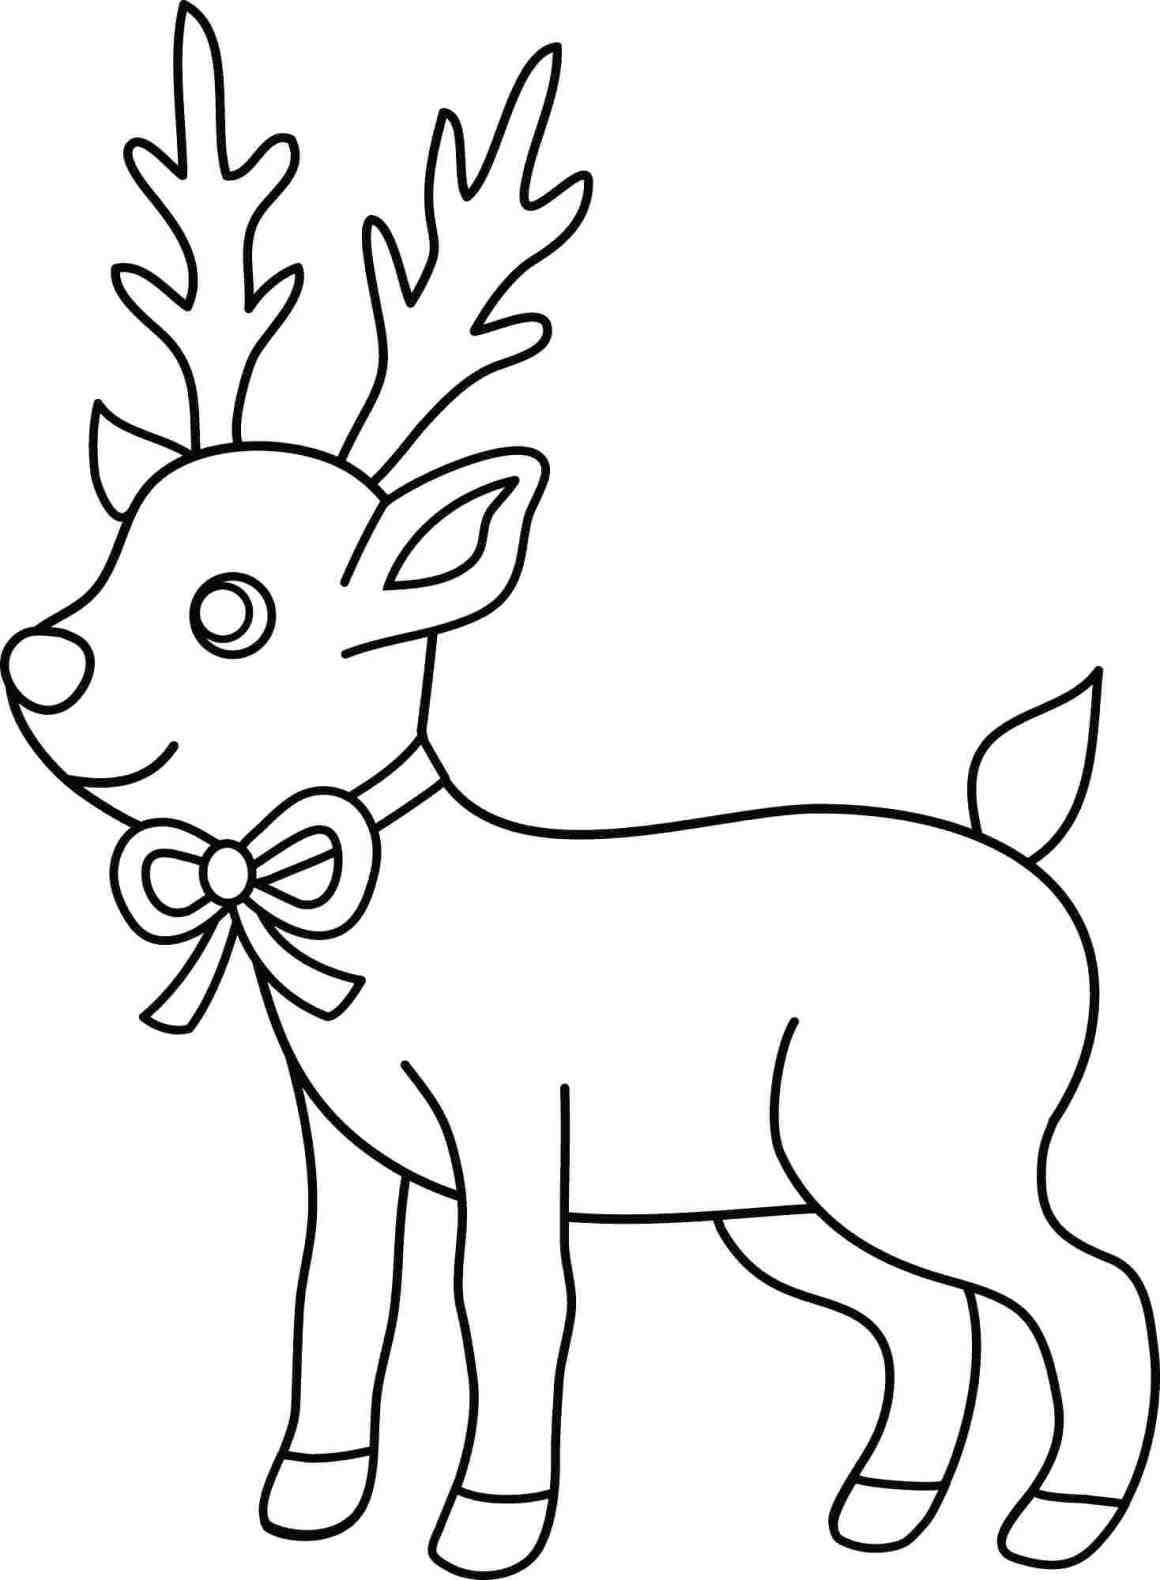 1160x1580 New Reindeer Coloring Pages Gallery Printable Coloring Sheet